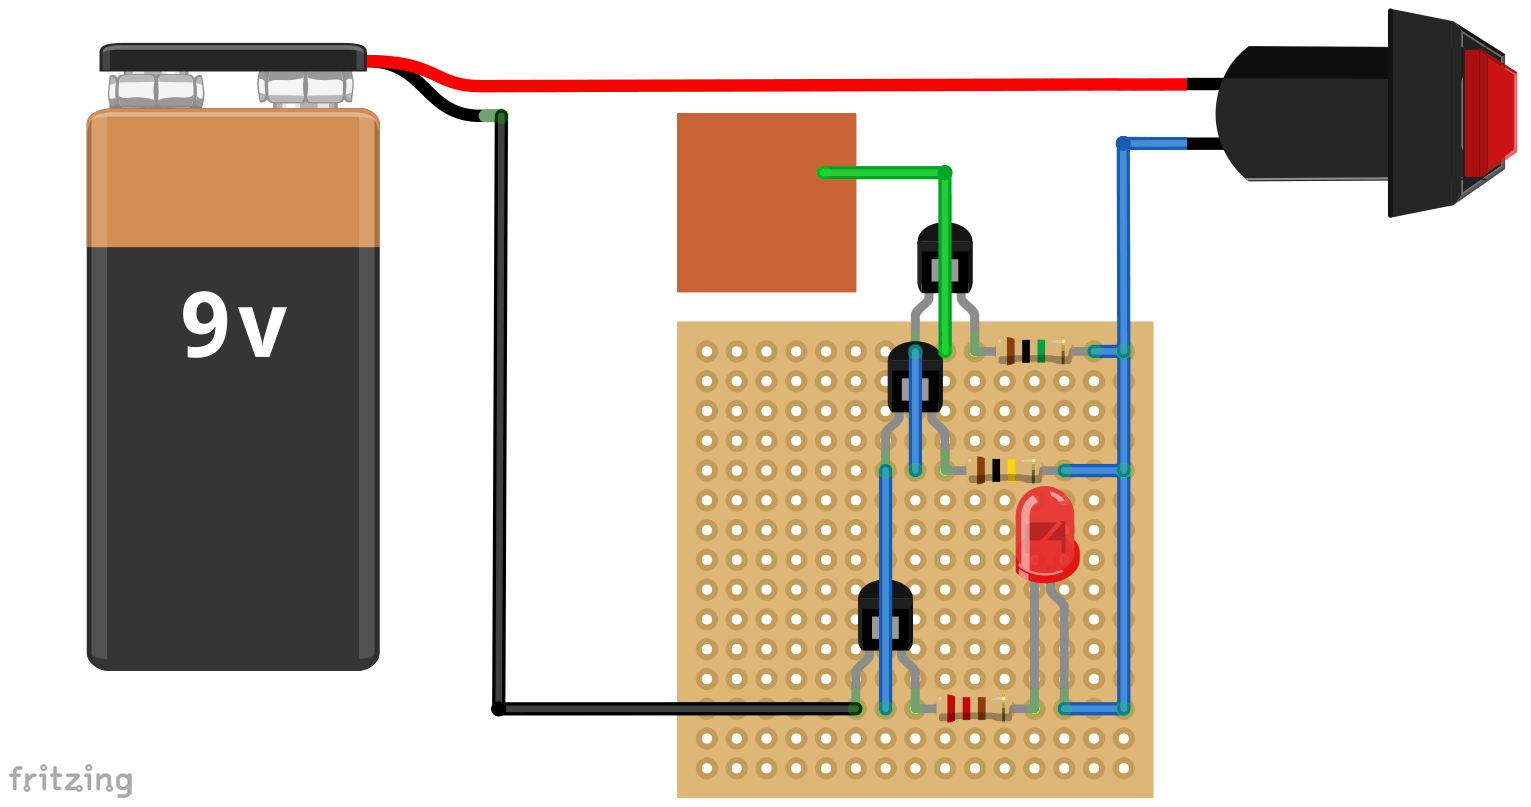 Basic Electronic Circuits Projects Non Contact Voltage Detector Producetion Pinterest Electronics This Simple And Simply Ingenious Maker Tool Can Detect Nearby Electrical Fields Using A Circuit Built Around Three Npn Transistors